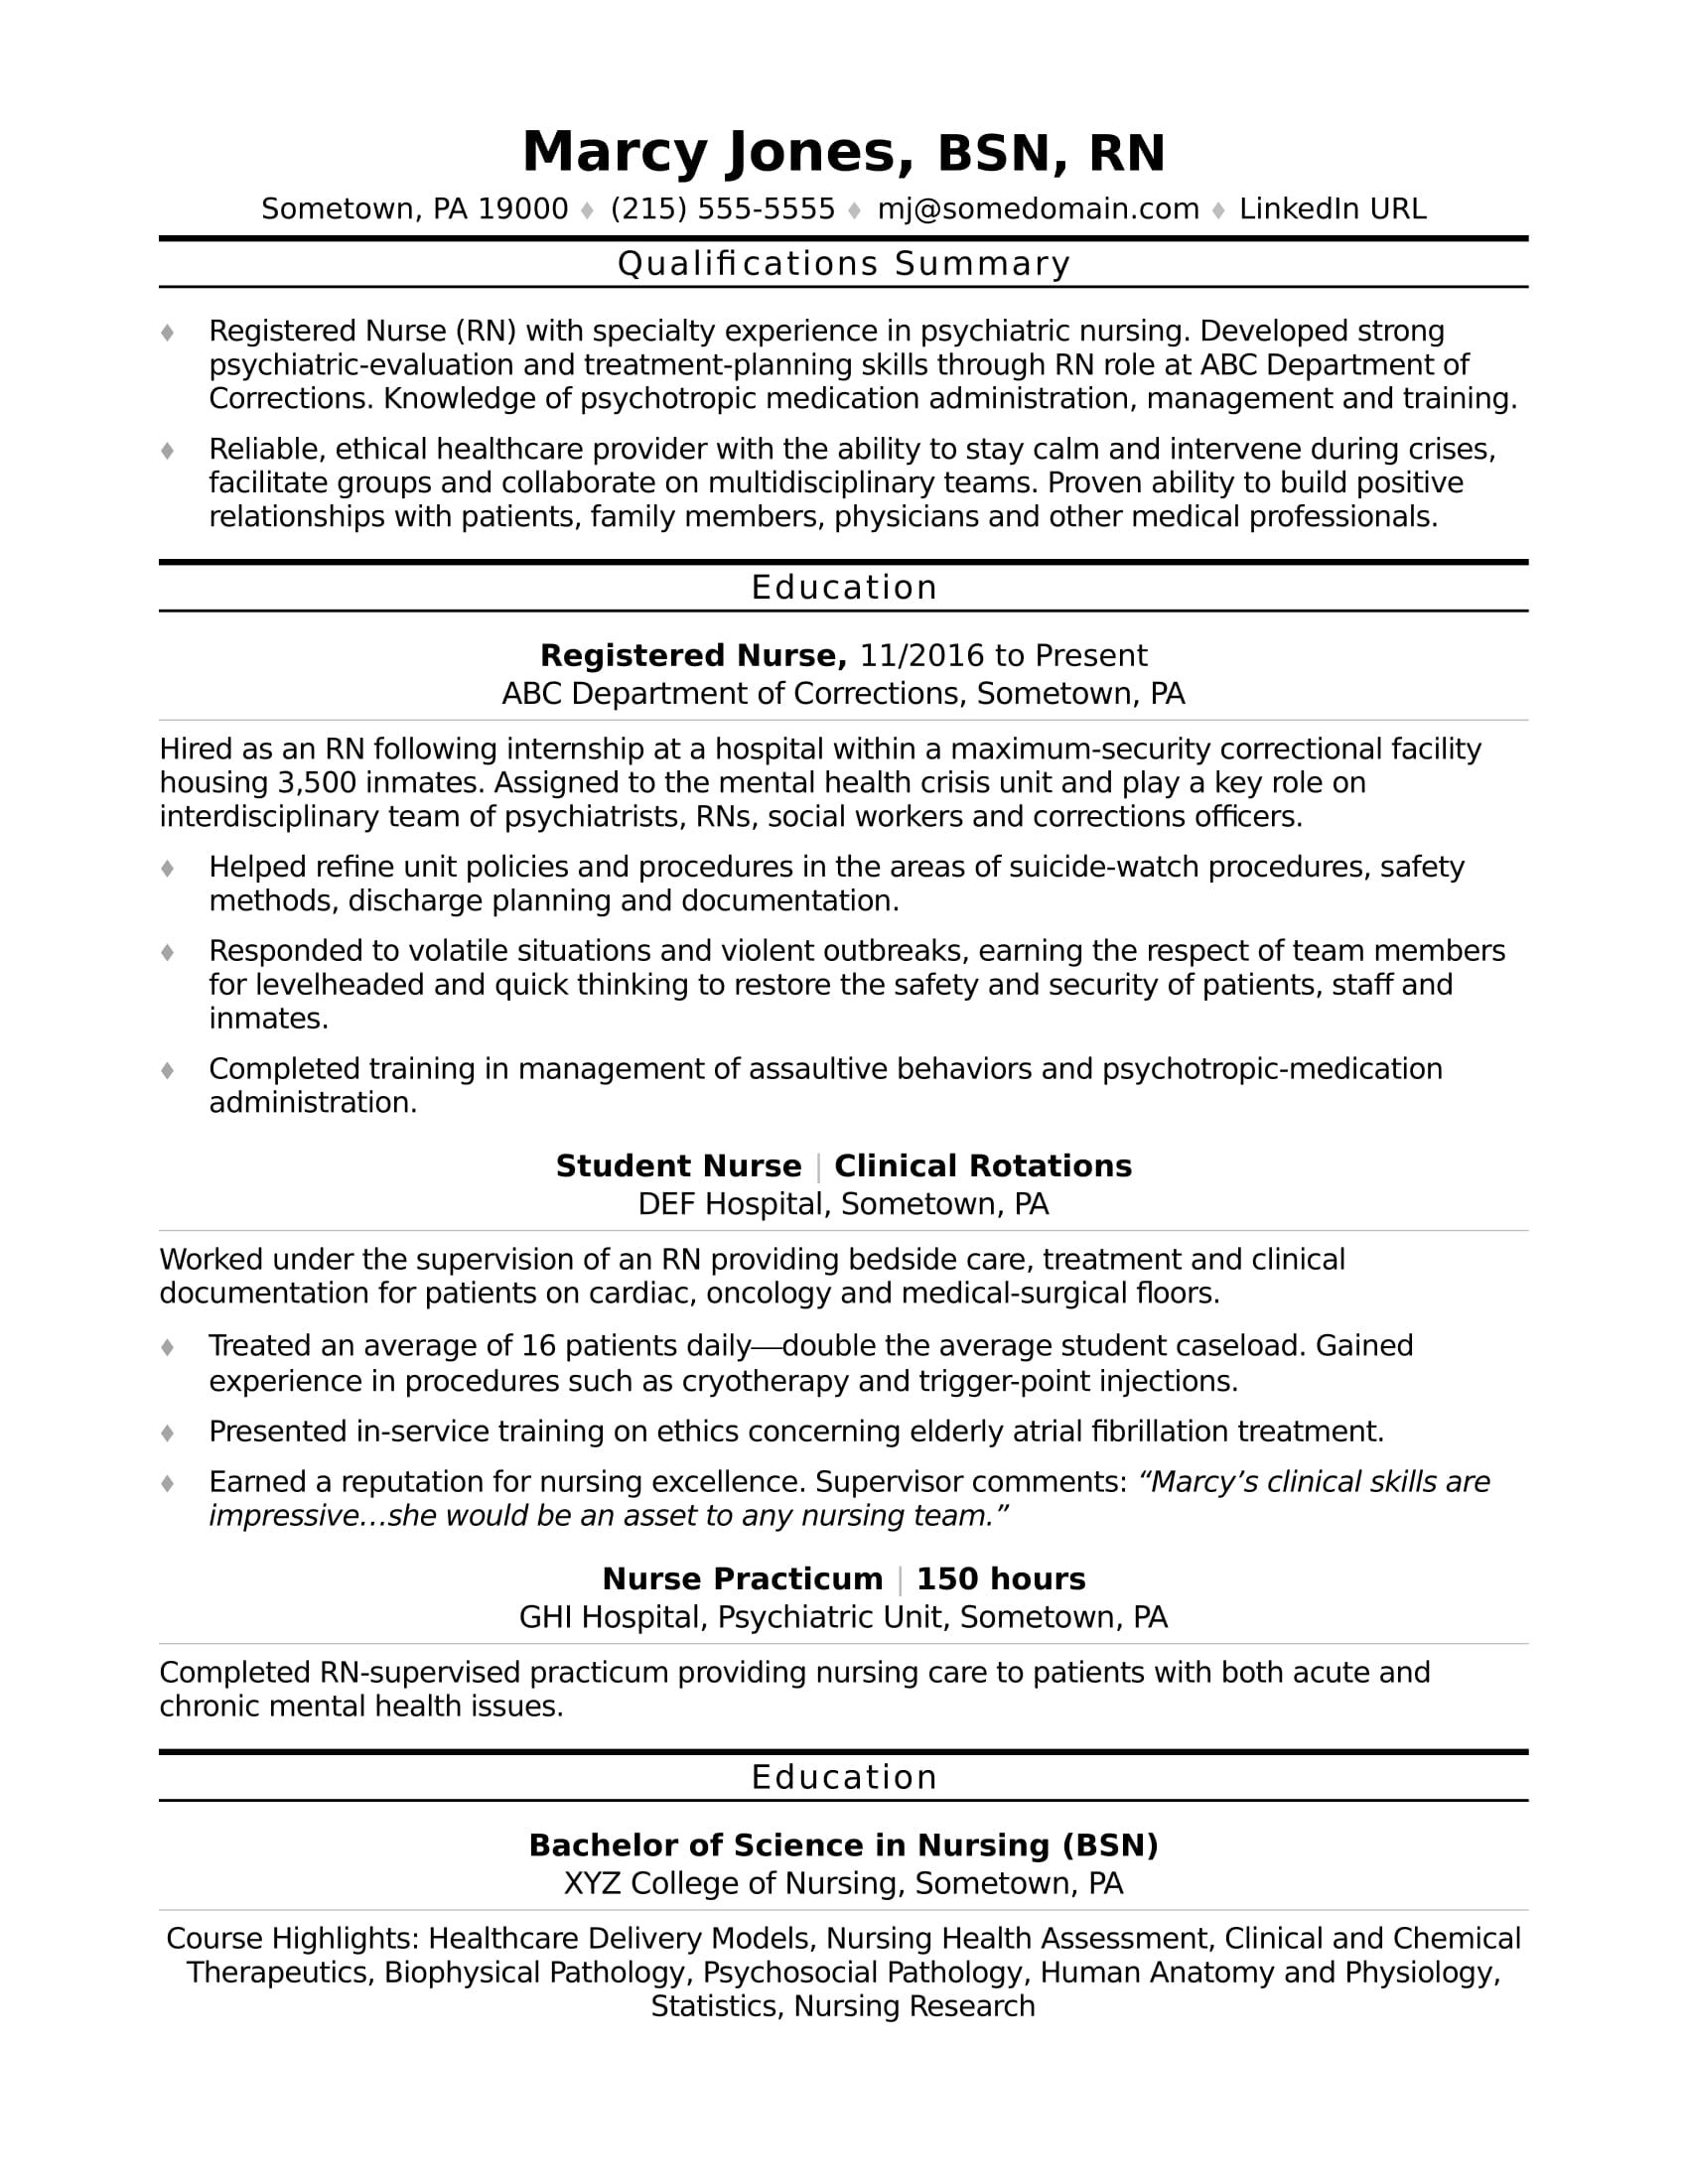 Learn How To Build A Powerful Entry Level Nurse Resume With This